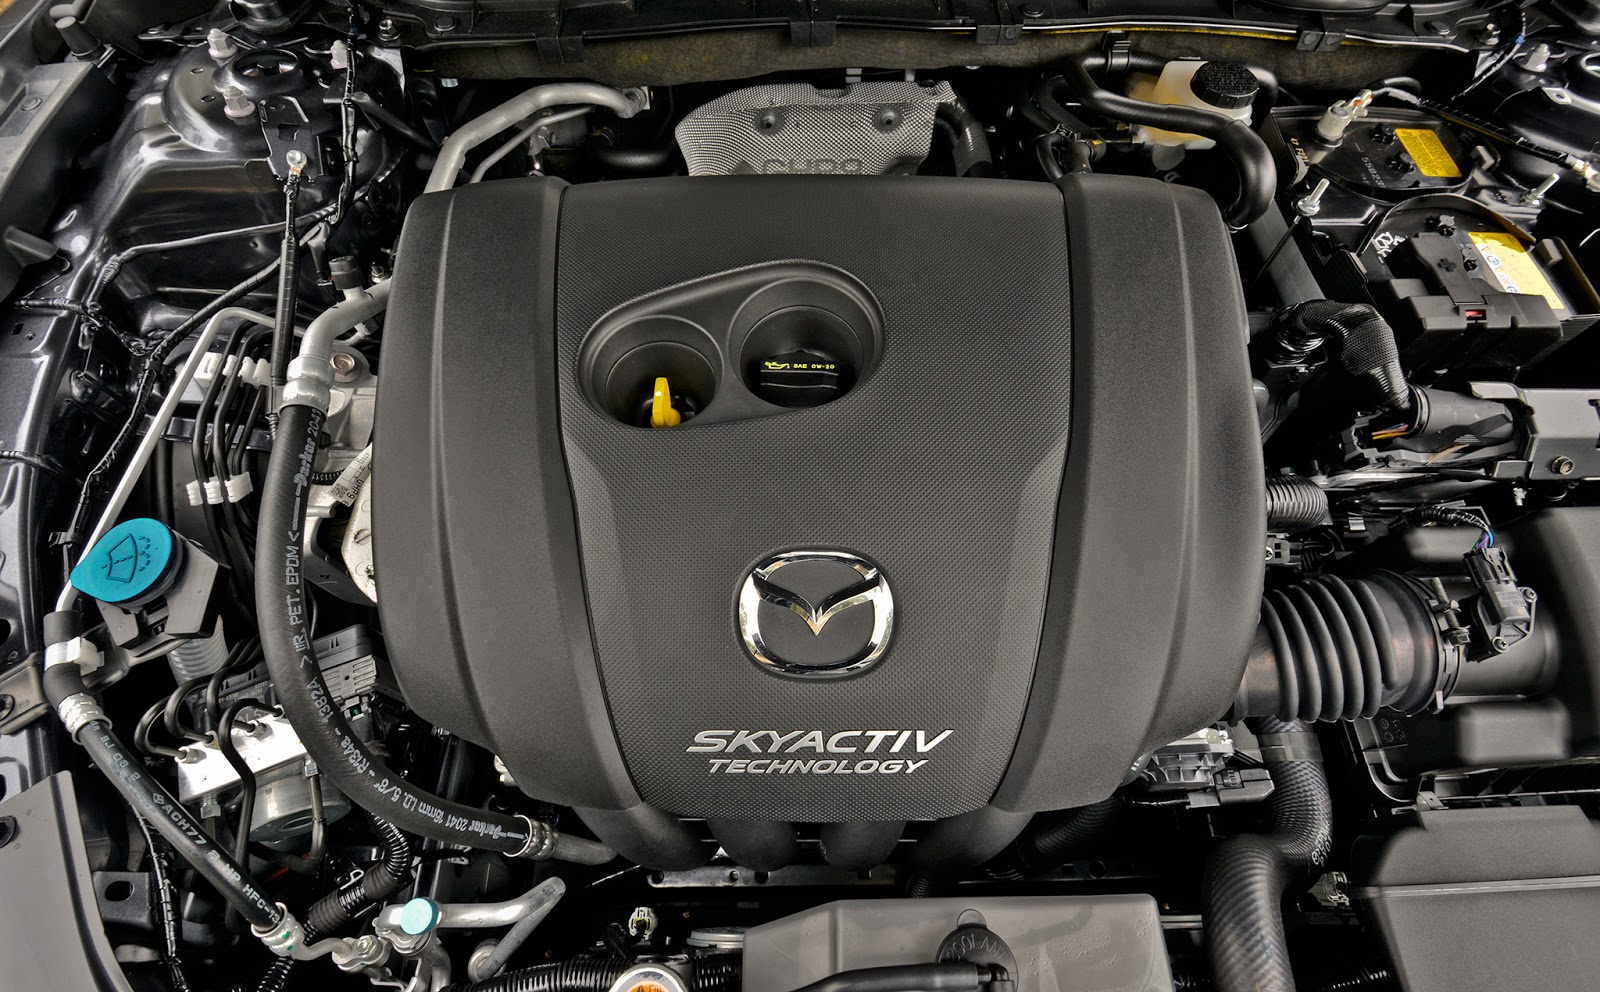 cylinder mazda deactivation inside new s efficient withcylinderdeactivation way mazdas engine technology g better fuel skeleton the skyactiv makes even